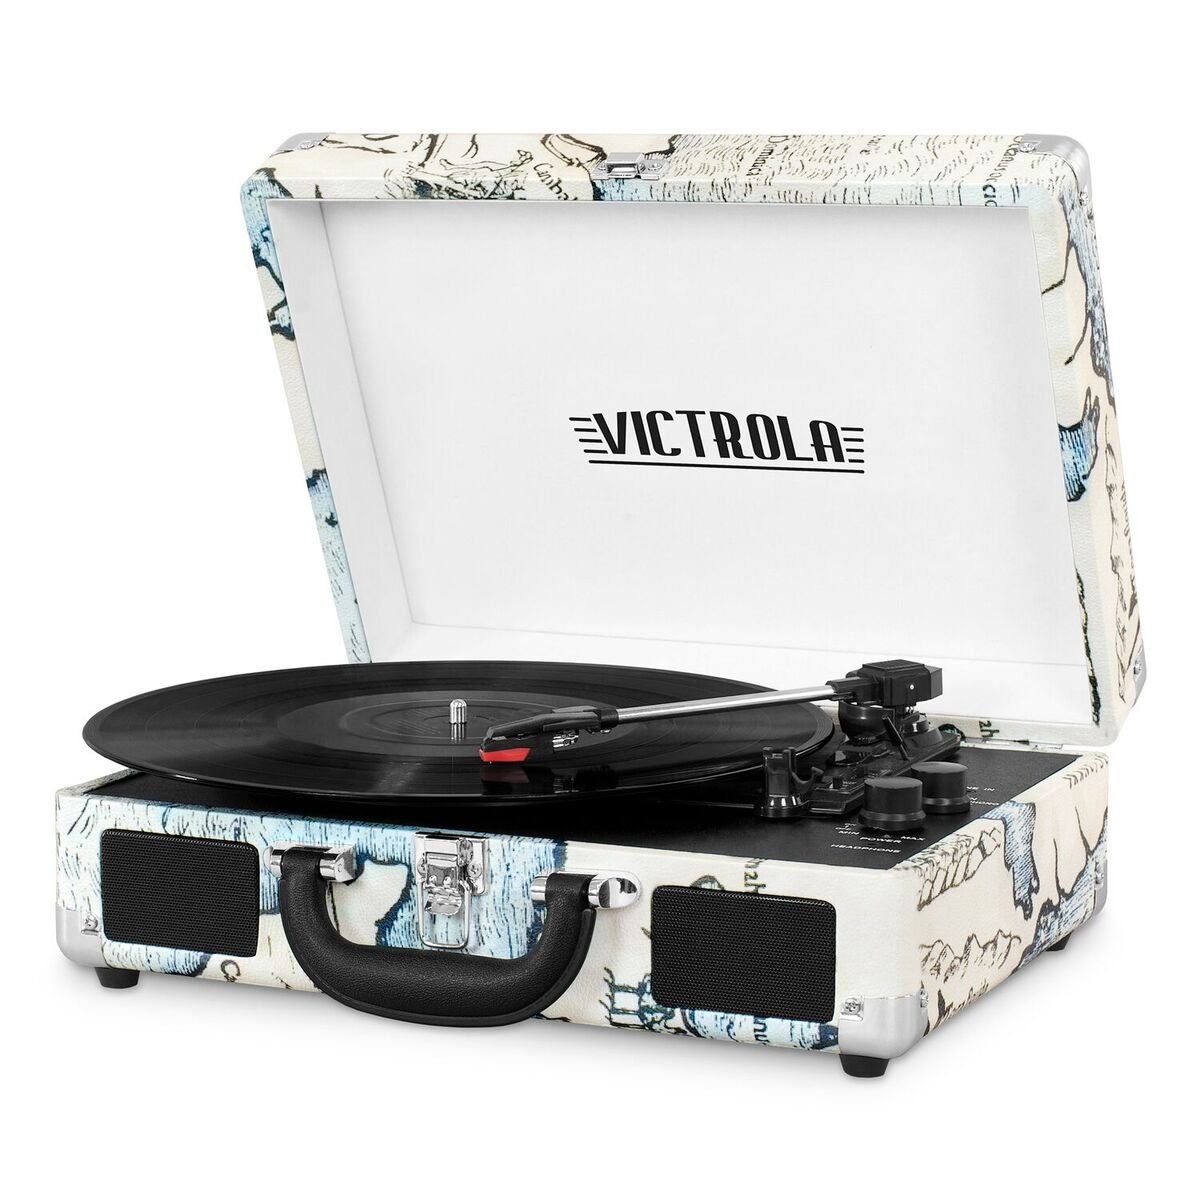 Victrola Vintage 3-Speed Bluetooth Suitcase Turntable with Speakers, Retro Map by Victrola